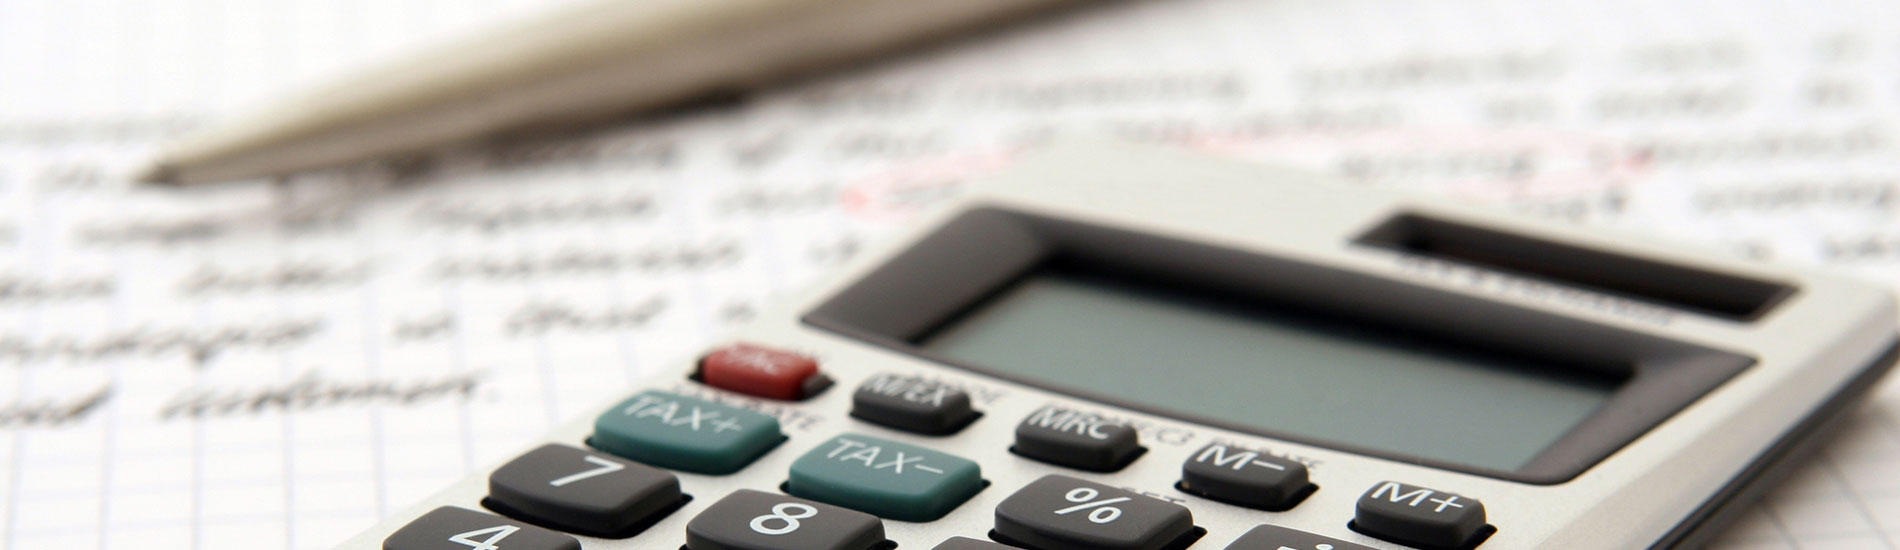 close-up of calculator and pen on graph paper